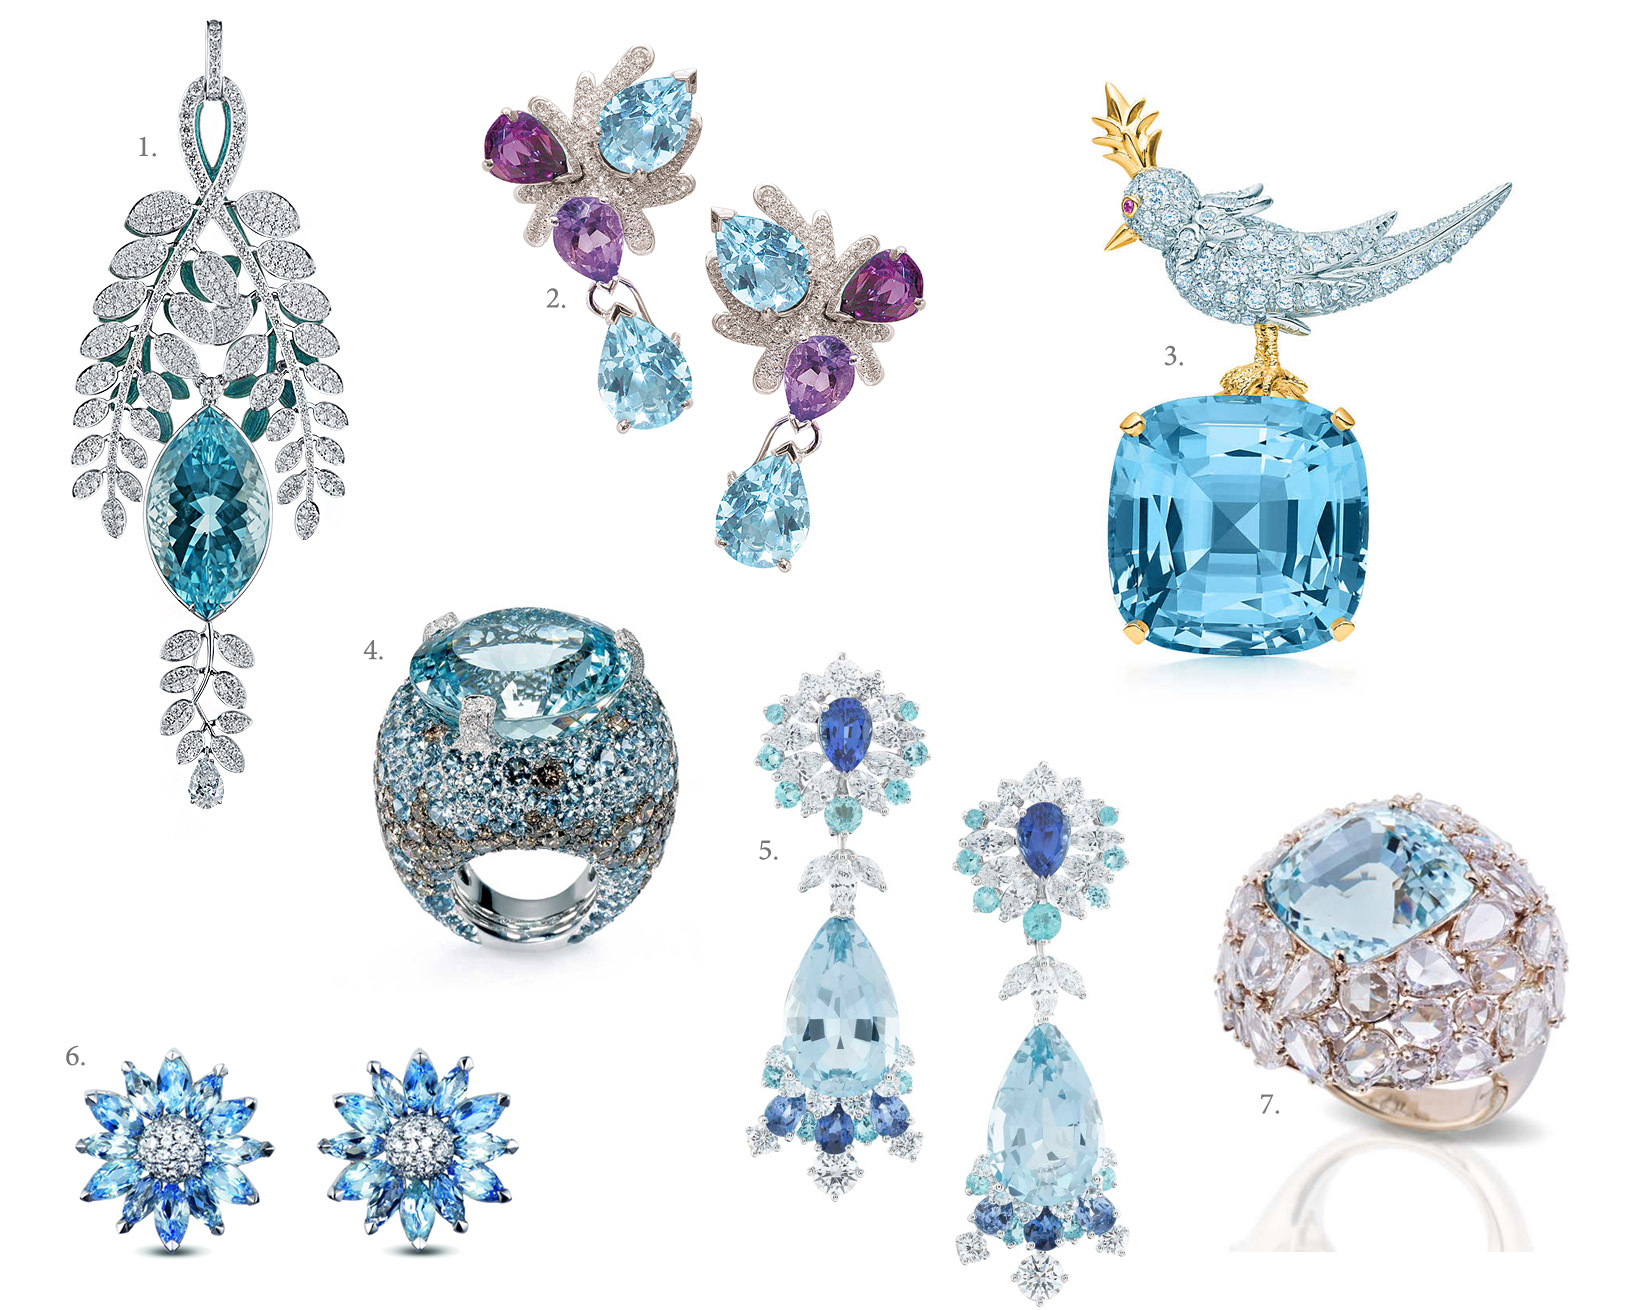 1. Ilgiz F. Aquamarine pendant with diamonds 2. Mathon Paris Coral earrings 3. Tiffany&Co Bird on a Rock clip with a 41.66 cts aquamarine 4. de Grisogono Melody of Colours Aquamarine ring 5. Van Cleef&Arpels Peau d